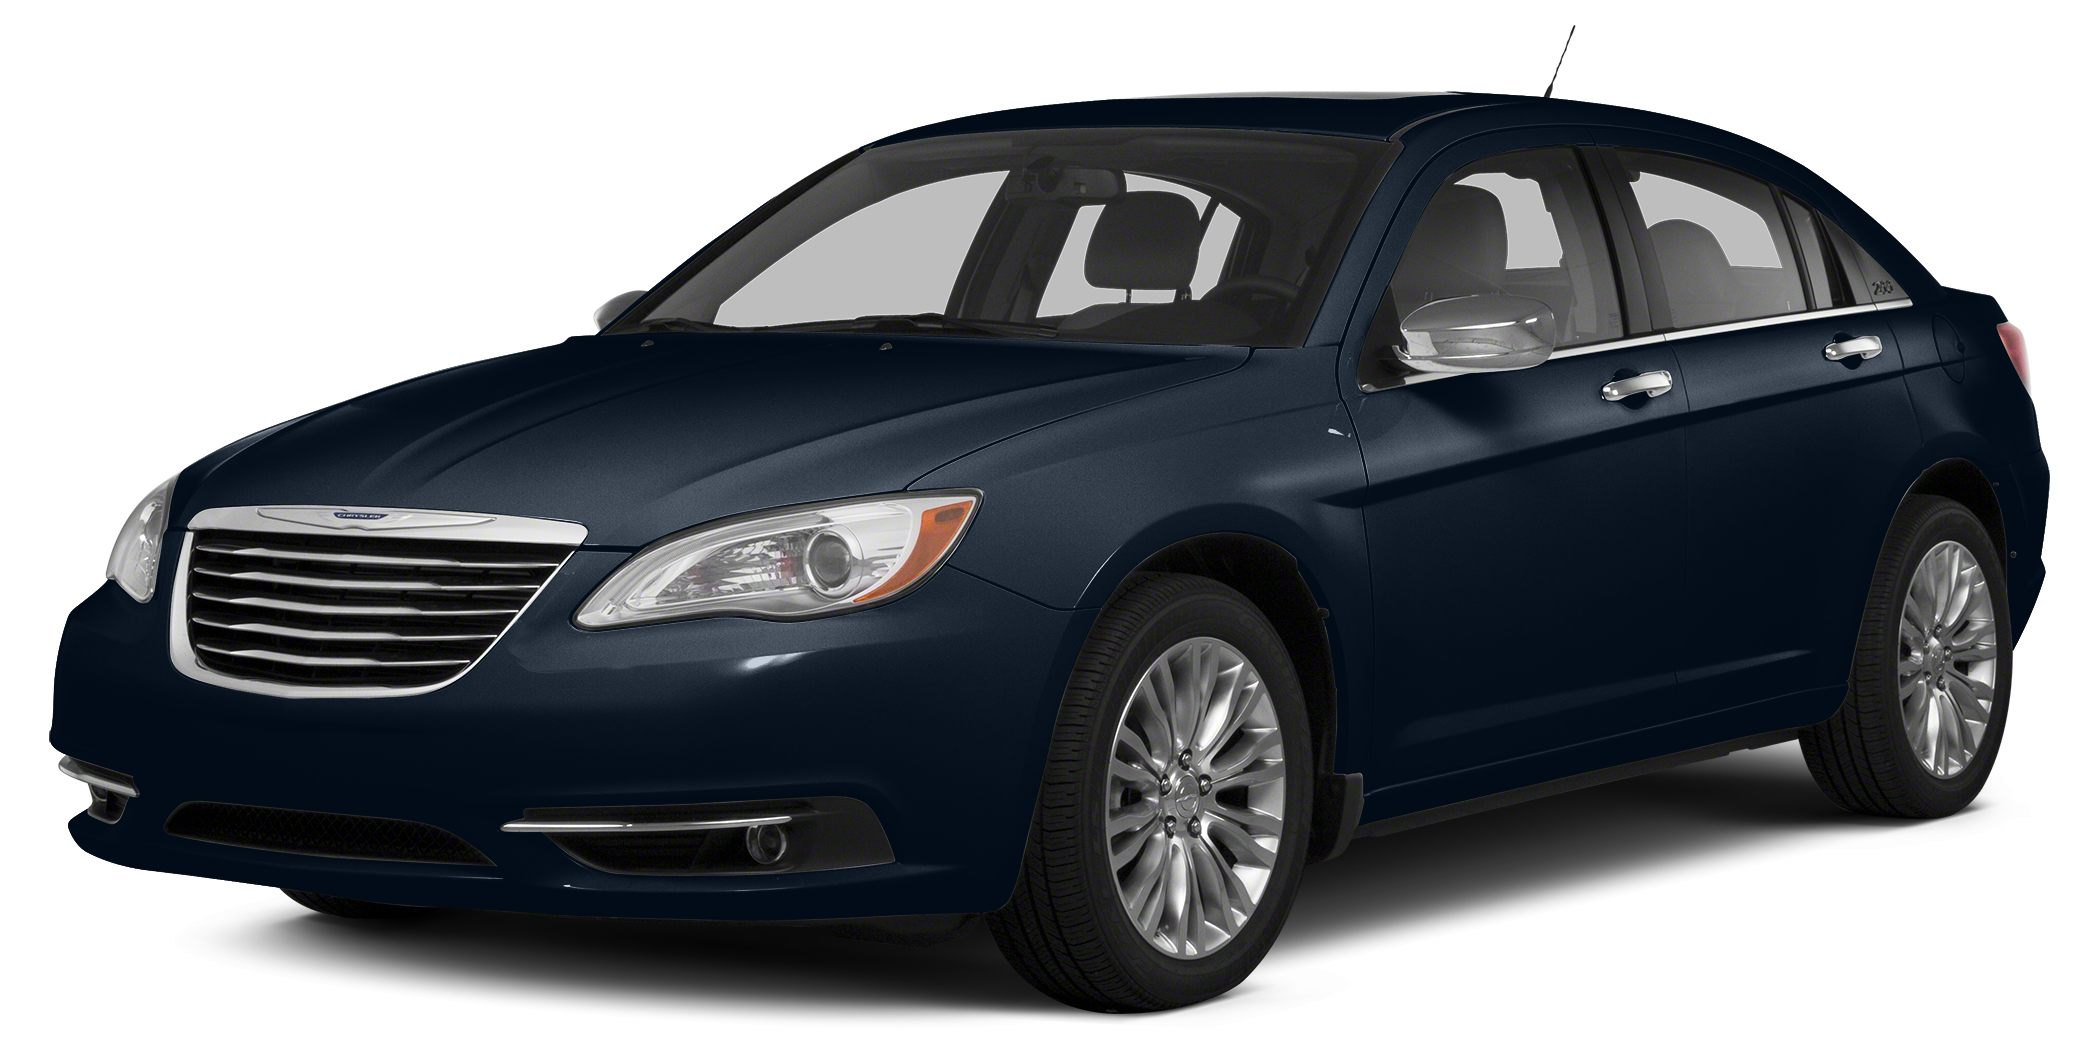 2014 Chrysler 200 Touring Touring trim Crystal Blue Pearlcoat exterior CARFAX 1-Owner ONLY 101